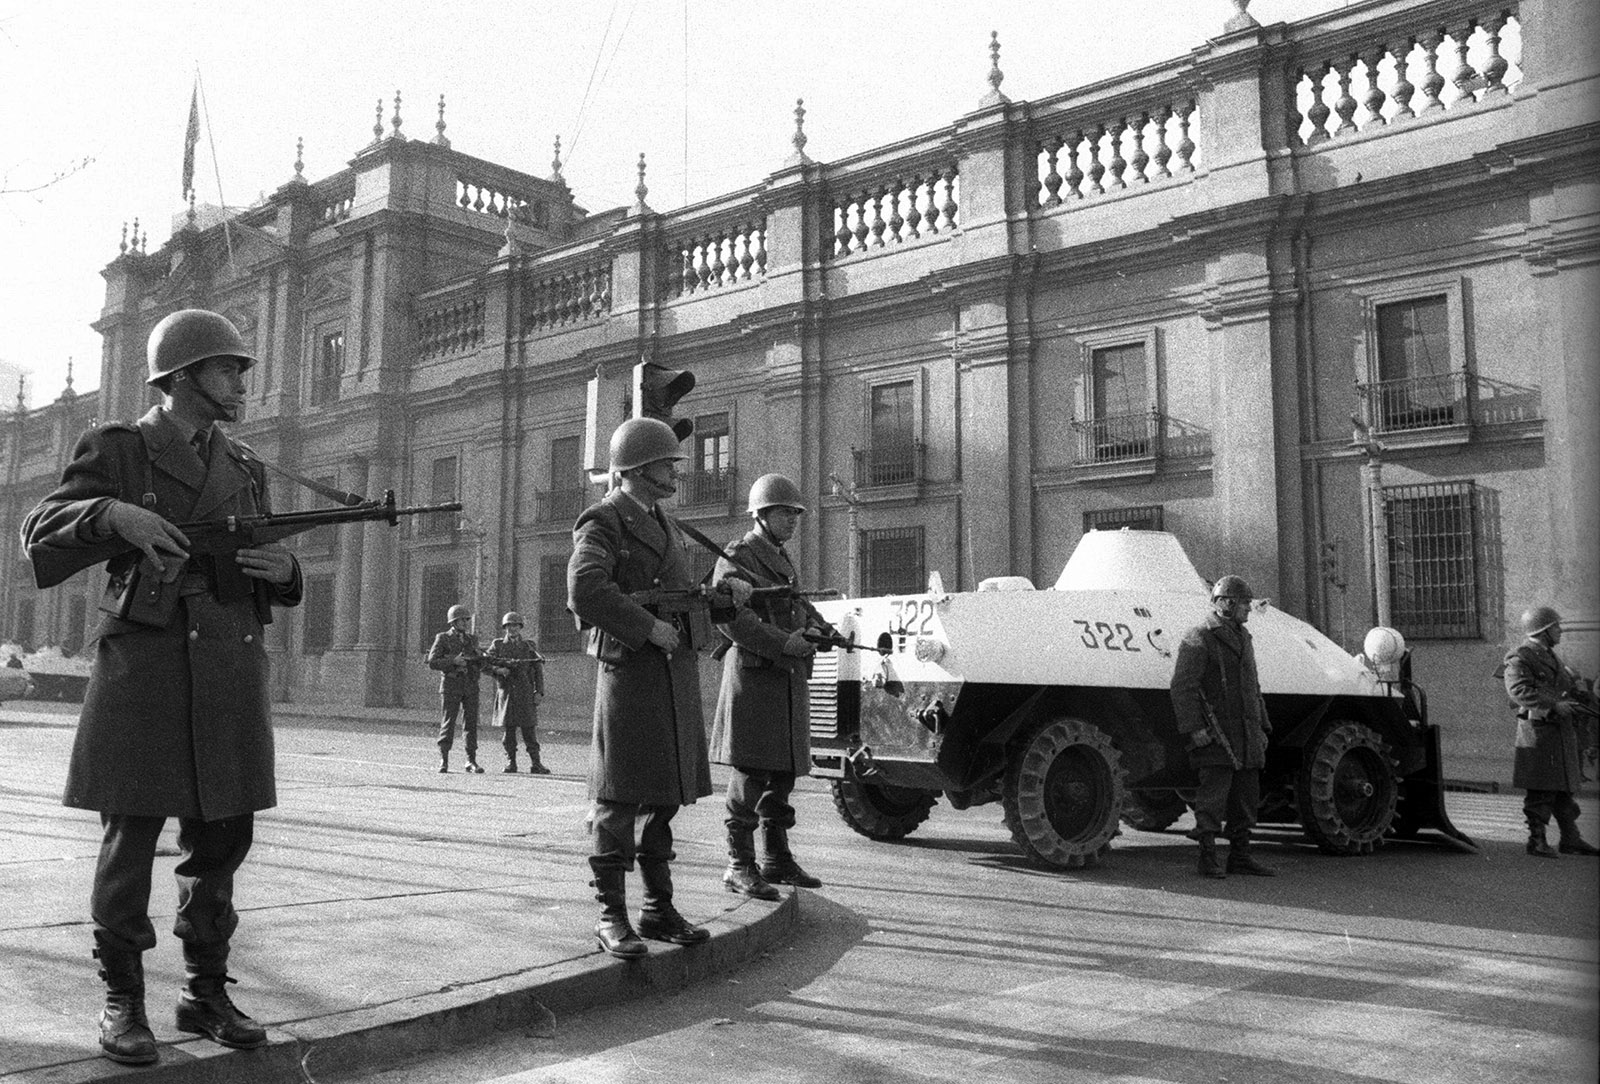 Presidential guards at La Moneda Palace, Chile 1973